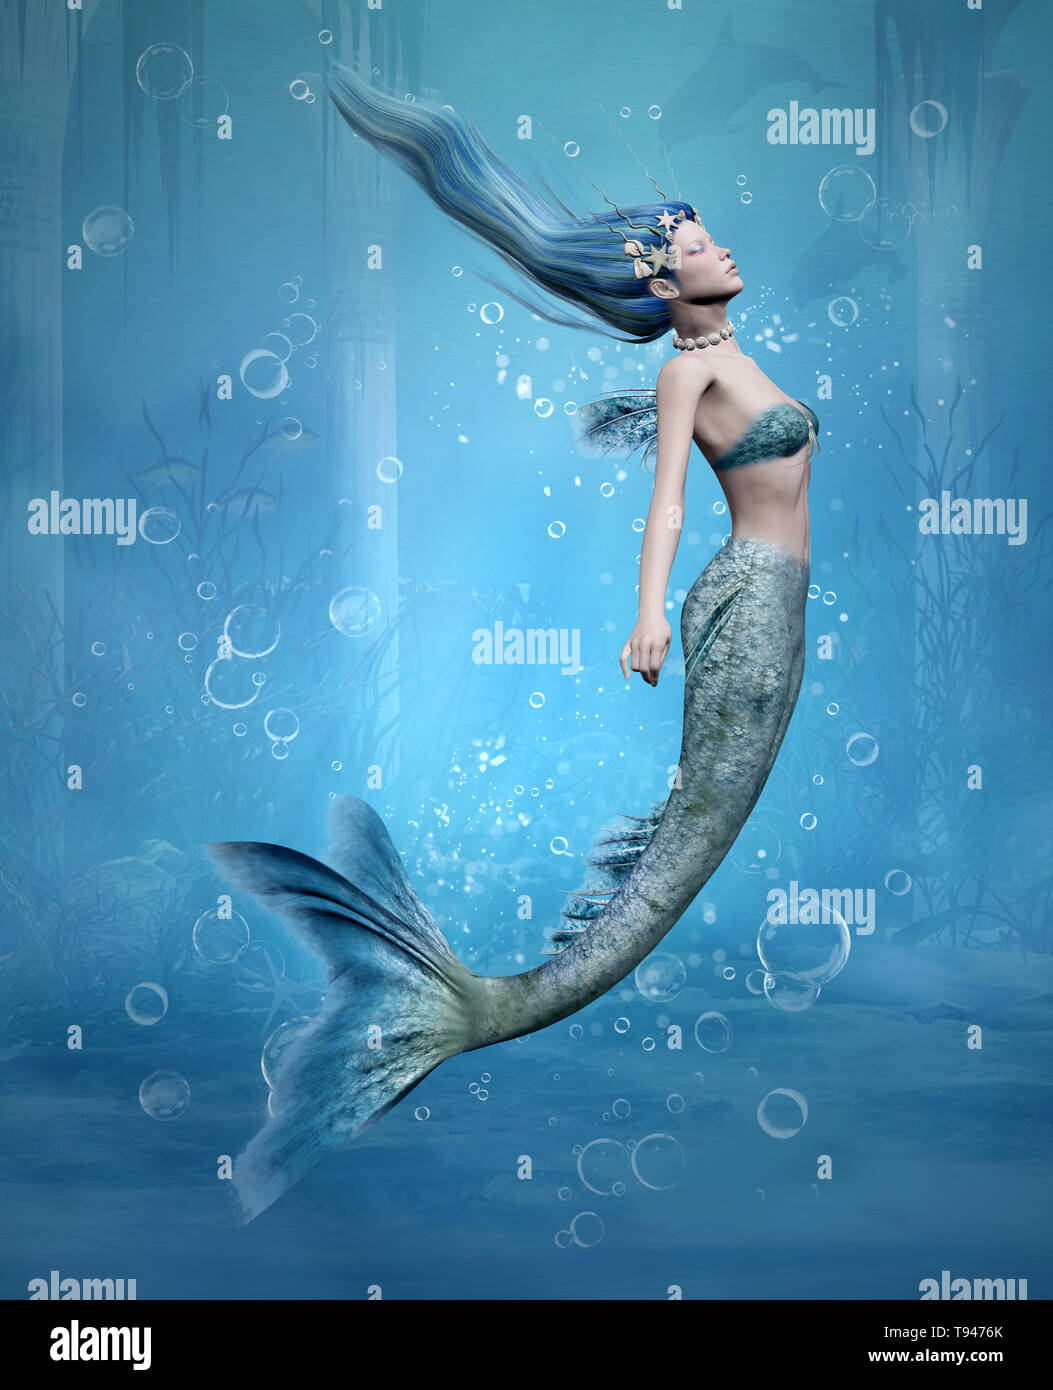 Young mermaid diving in an old underwater temple scenery - Stock Image